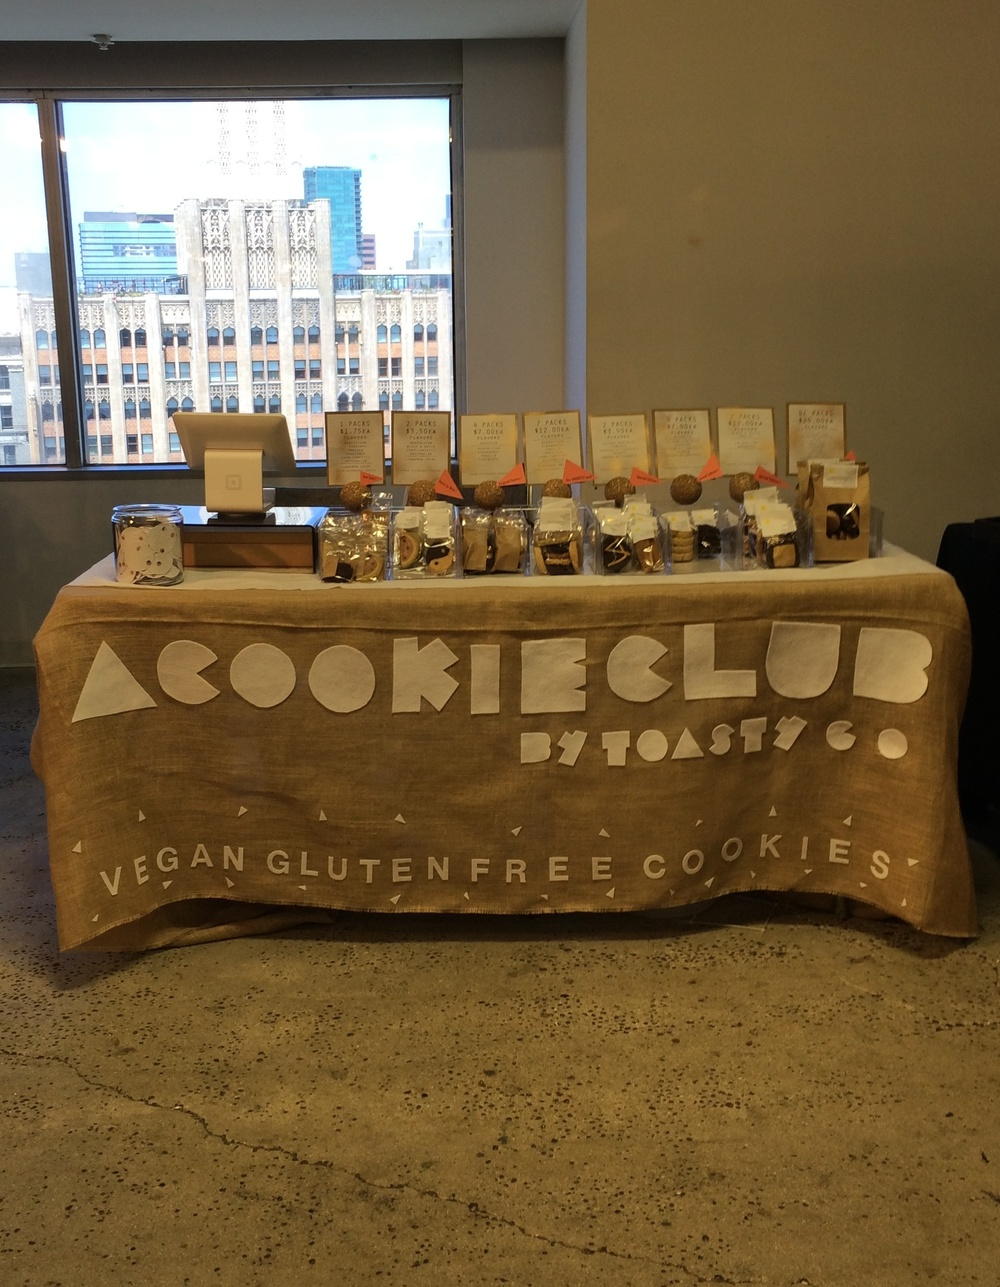 Our table, at the Unique LA spring show, with a picturesque view of the Spanish Gothic Ace Hotel and beautiful downtown LA, May 2014.